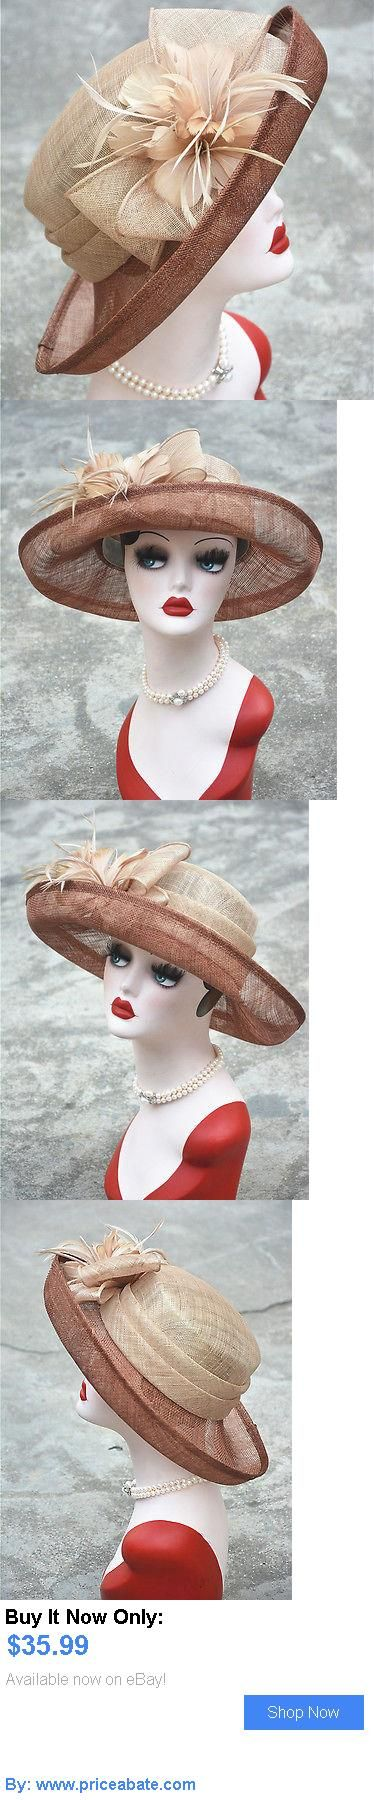 Women Formal Hats: Womens Kentucky Derby Wedding Sinamay Ascot Dress Church Roll Vintage Retro Hat BUY IT NOW ONLY: $35.99 #priceabateWomenFormalHats OR #priceabate